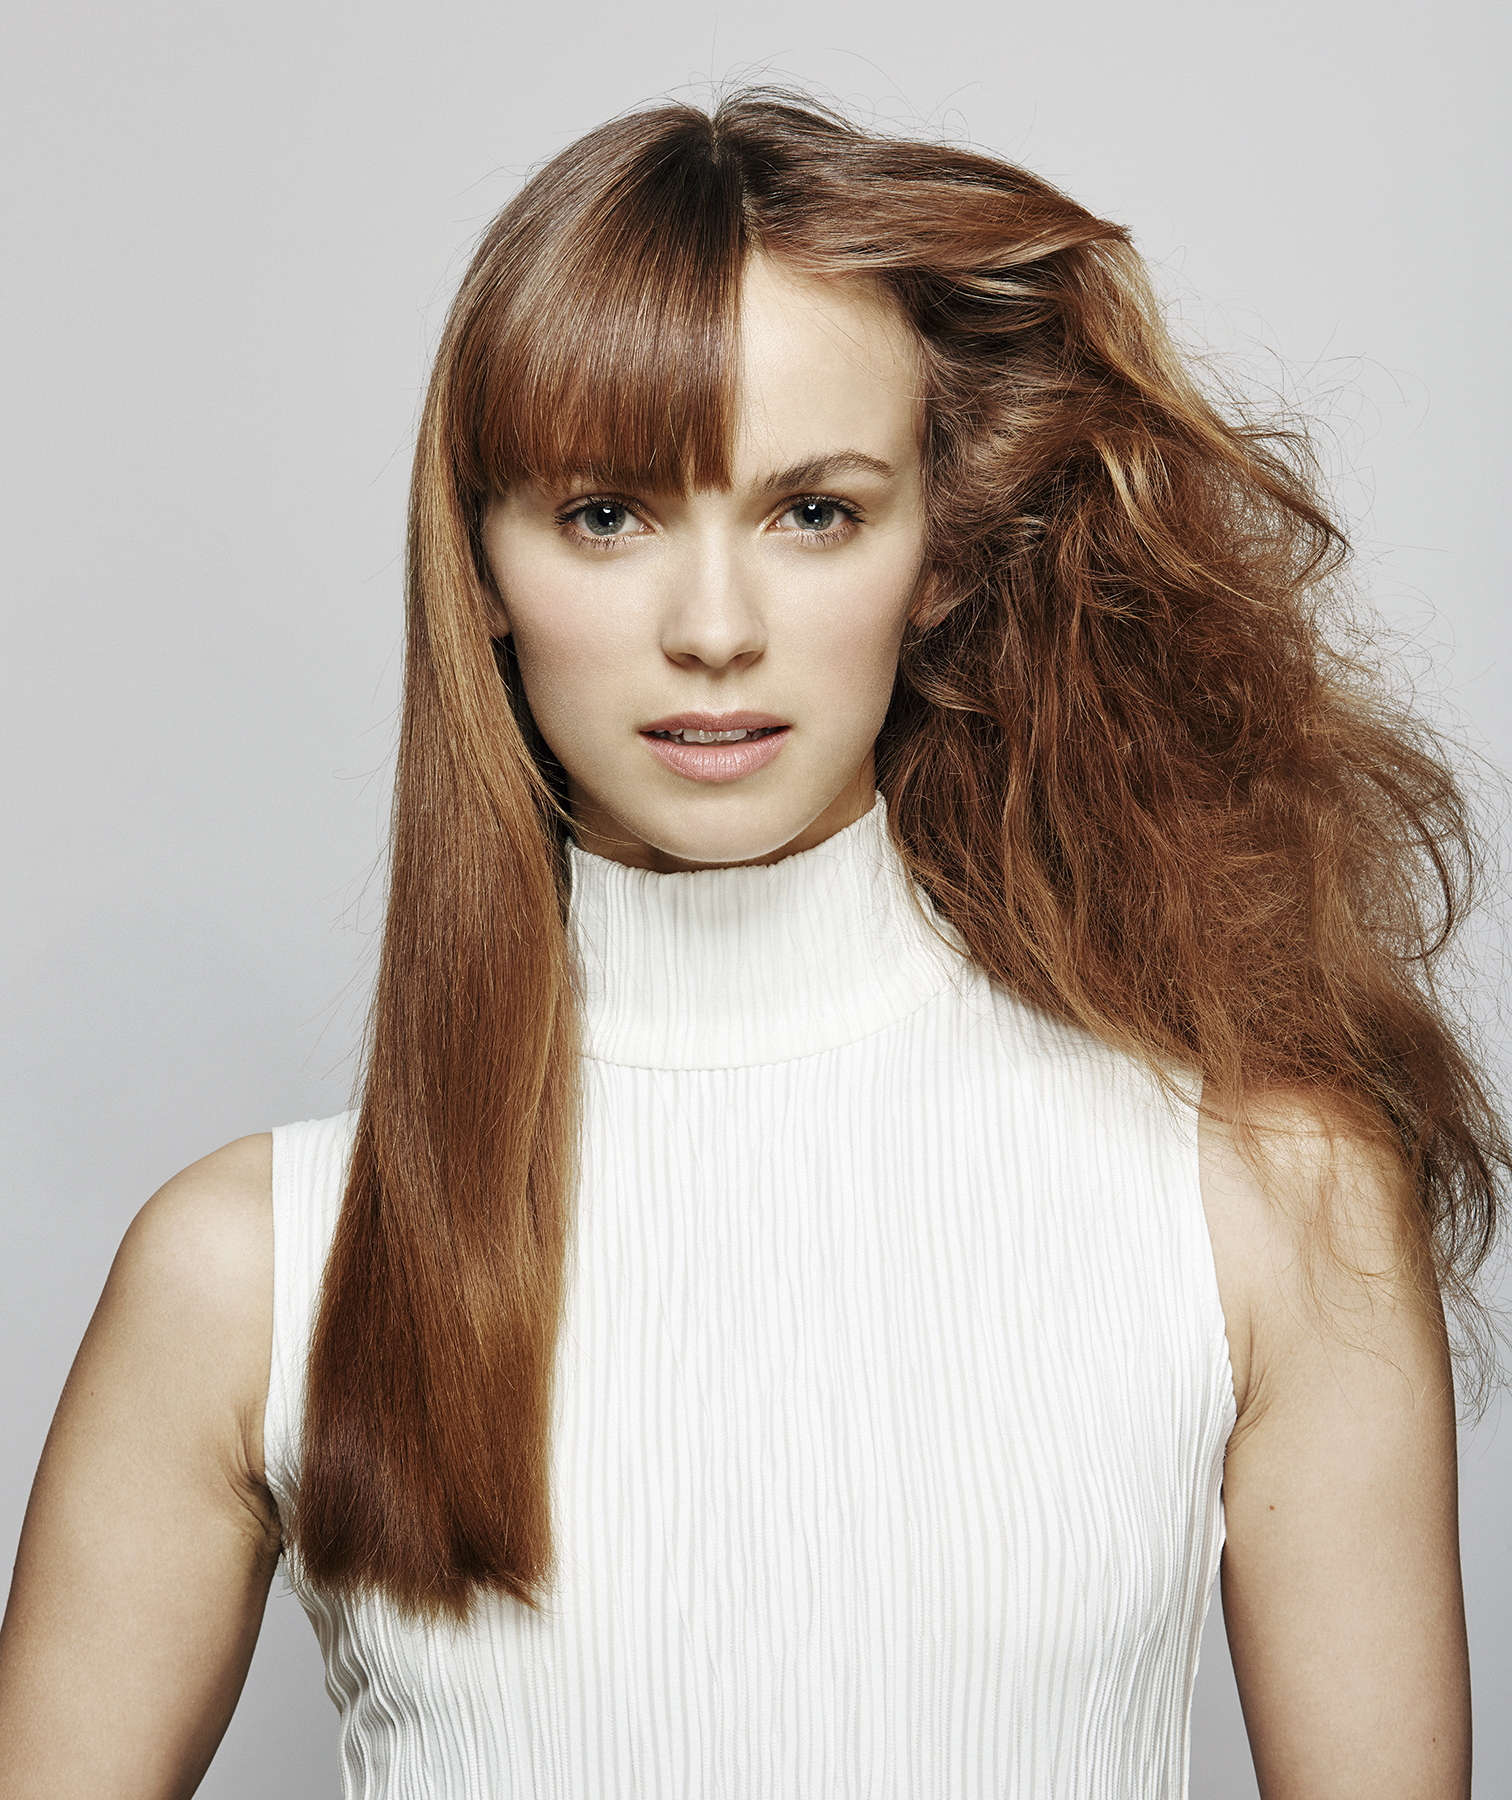 Model with straight hair and frizzy hair